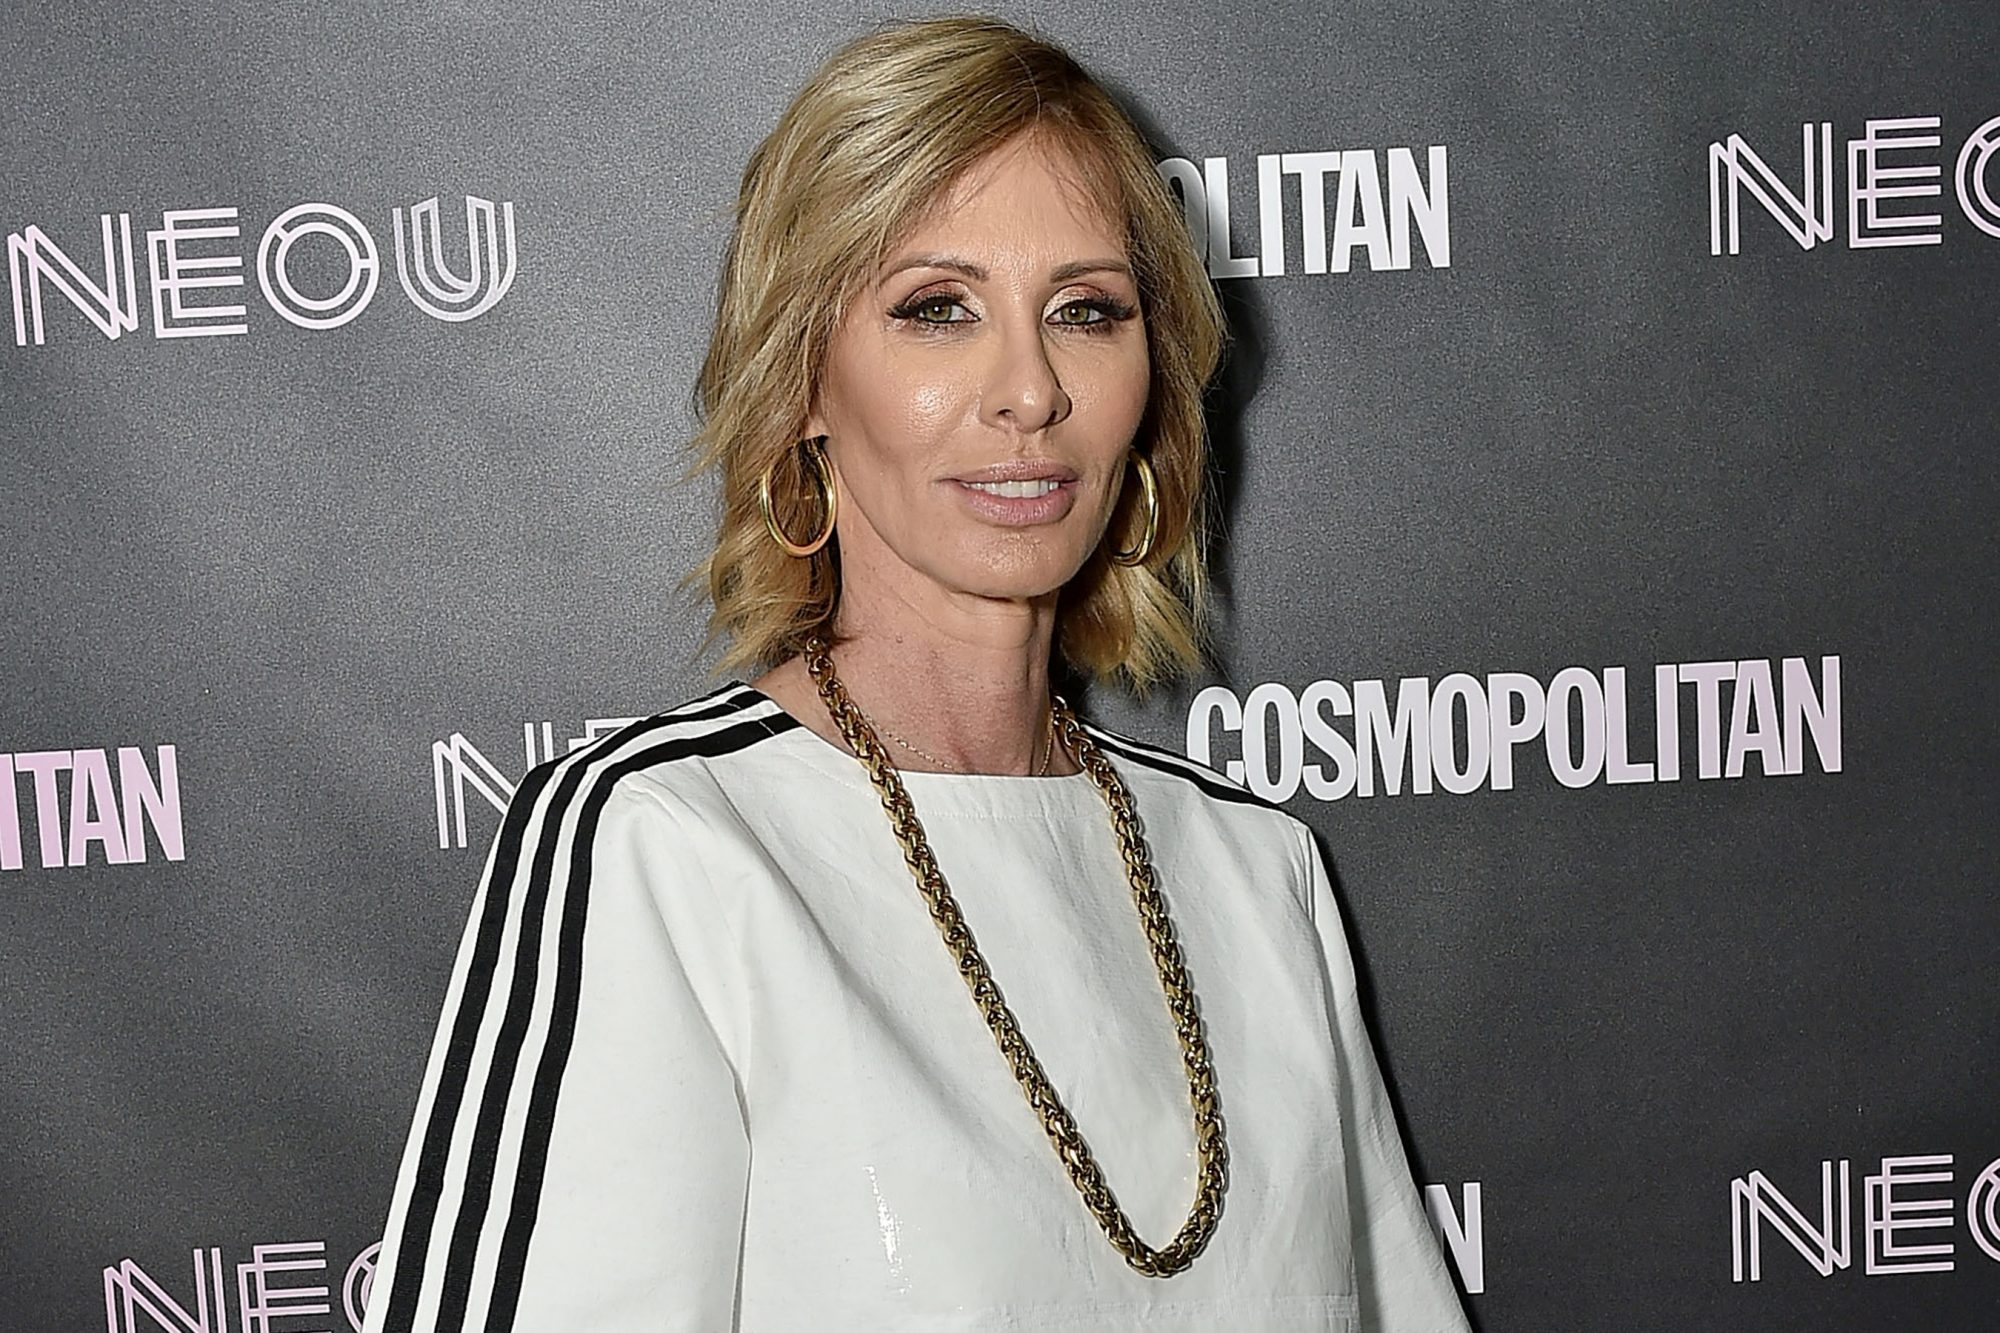 Cosmopolitan And Carole Radziwill Co-Host the opening of fitness space NEO U